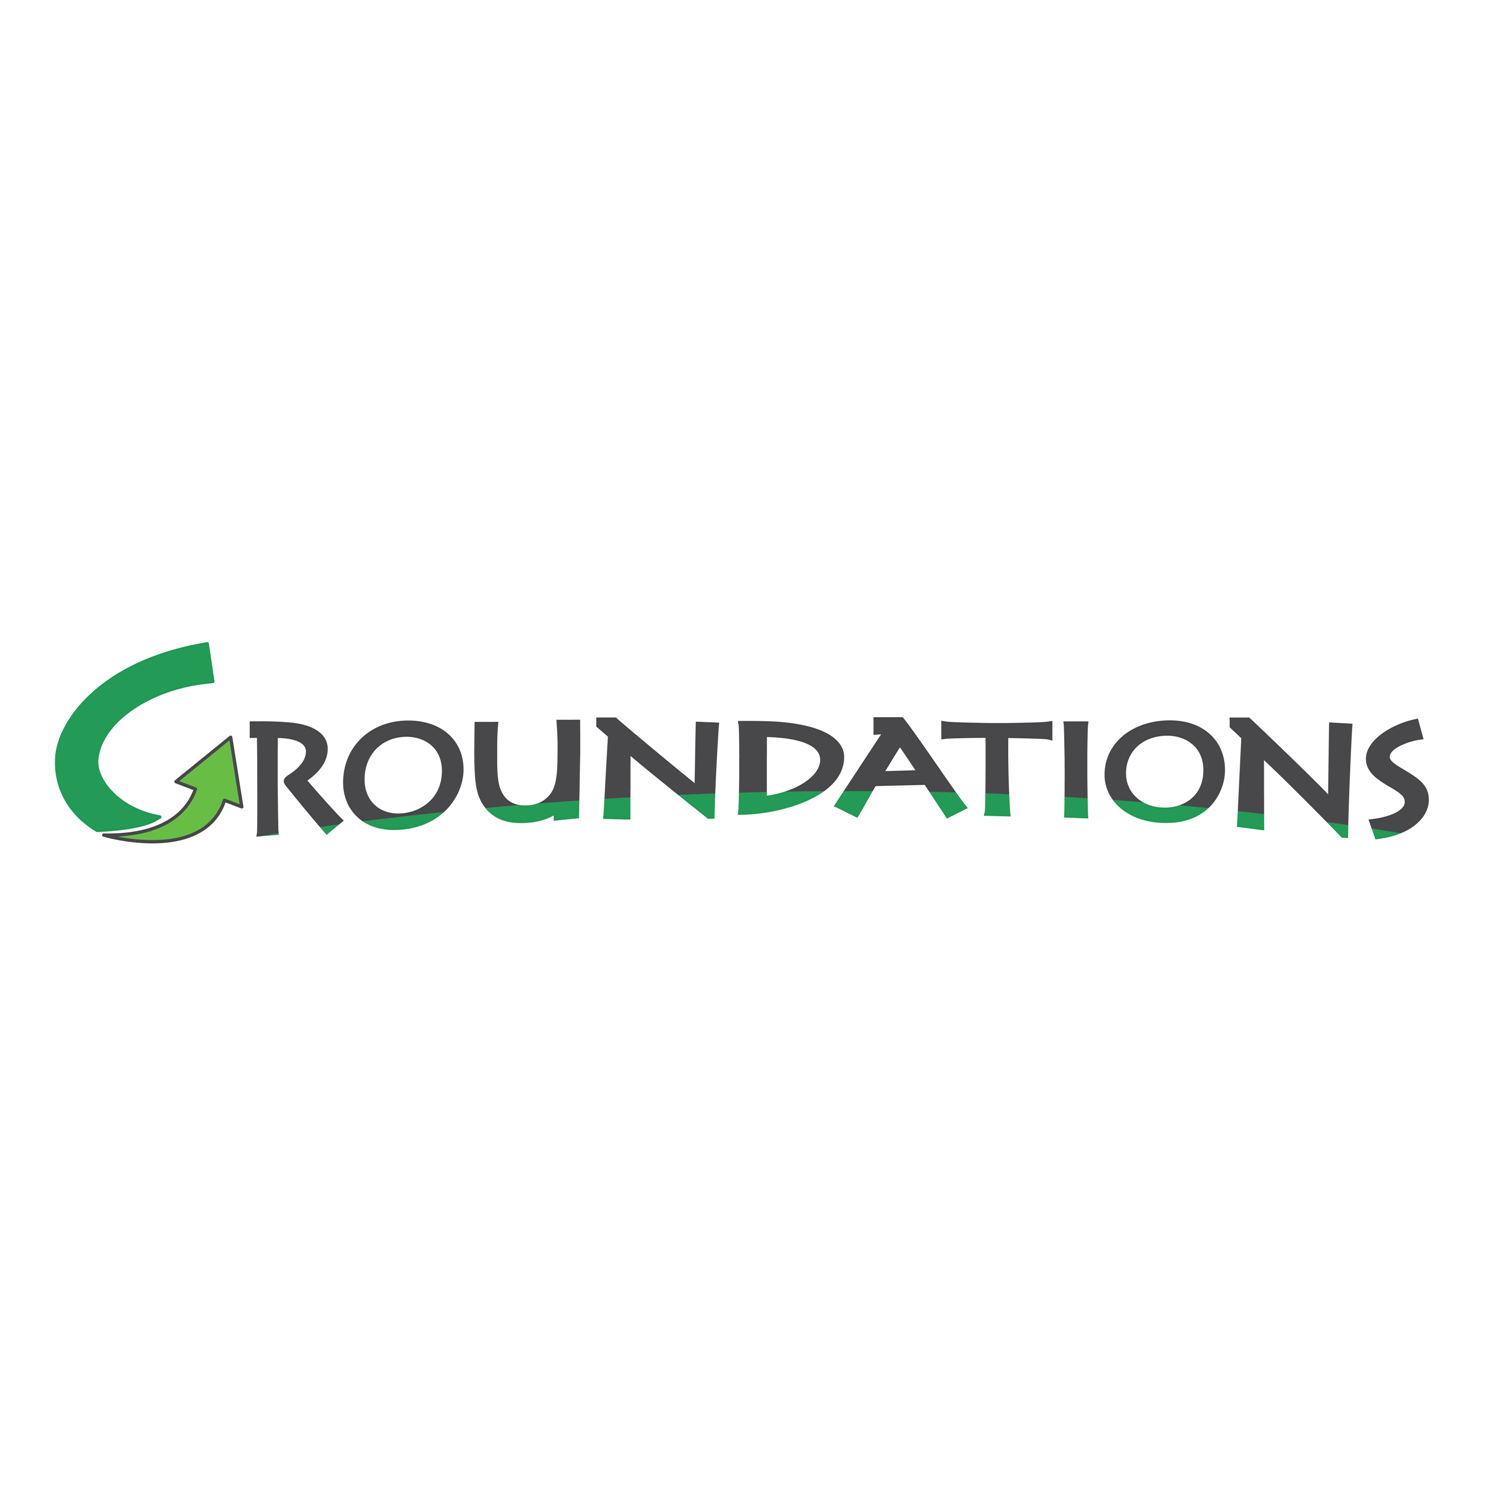 Groundations Logo